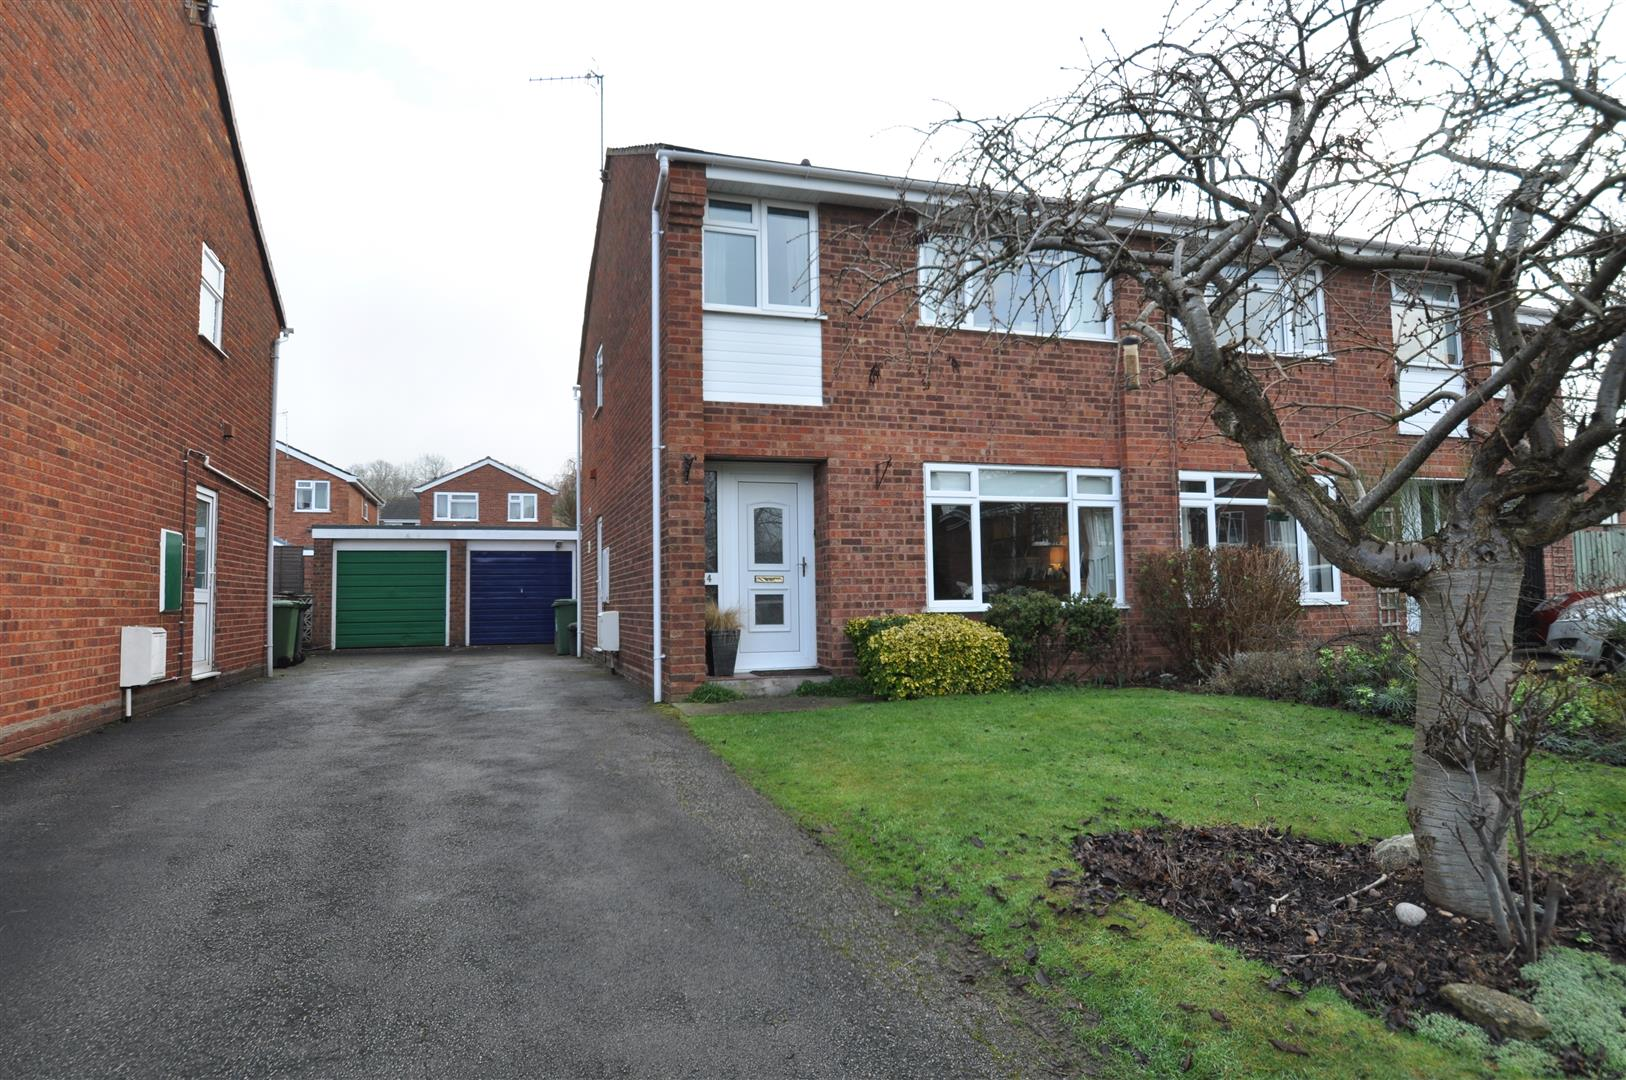 3 Bedrooms Semi Detached House for sale in Willets Road, Droitwich